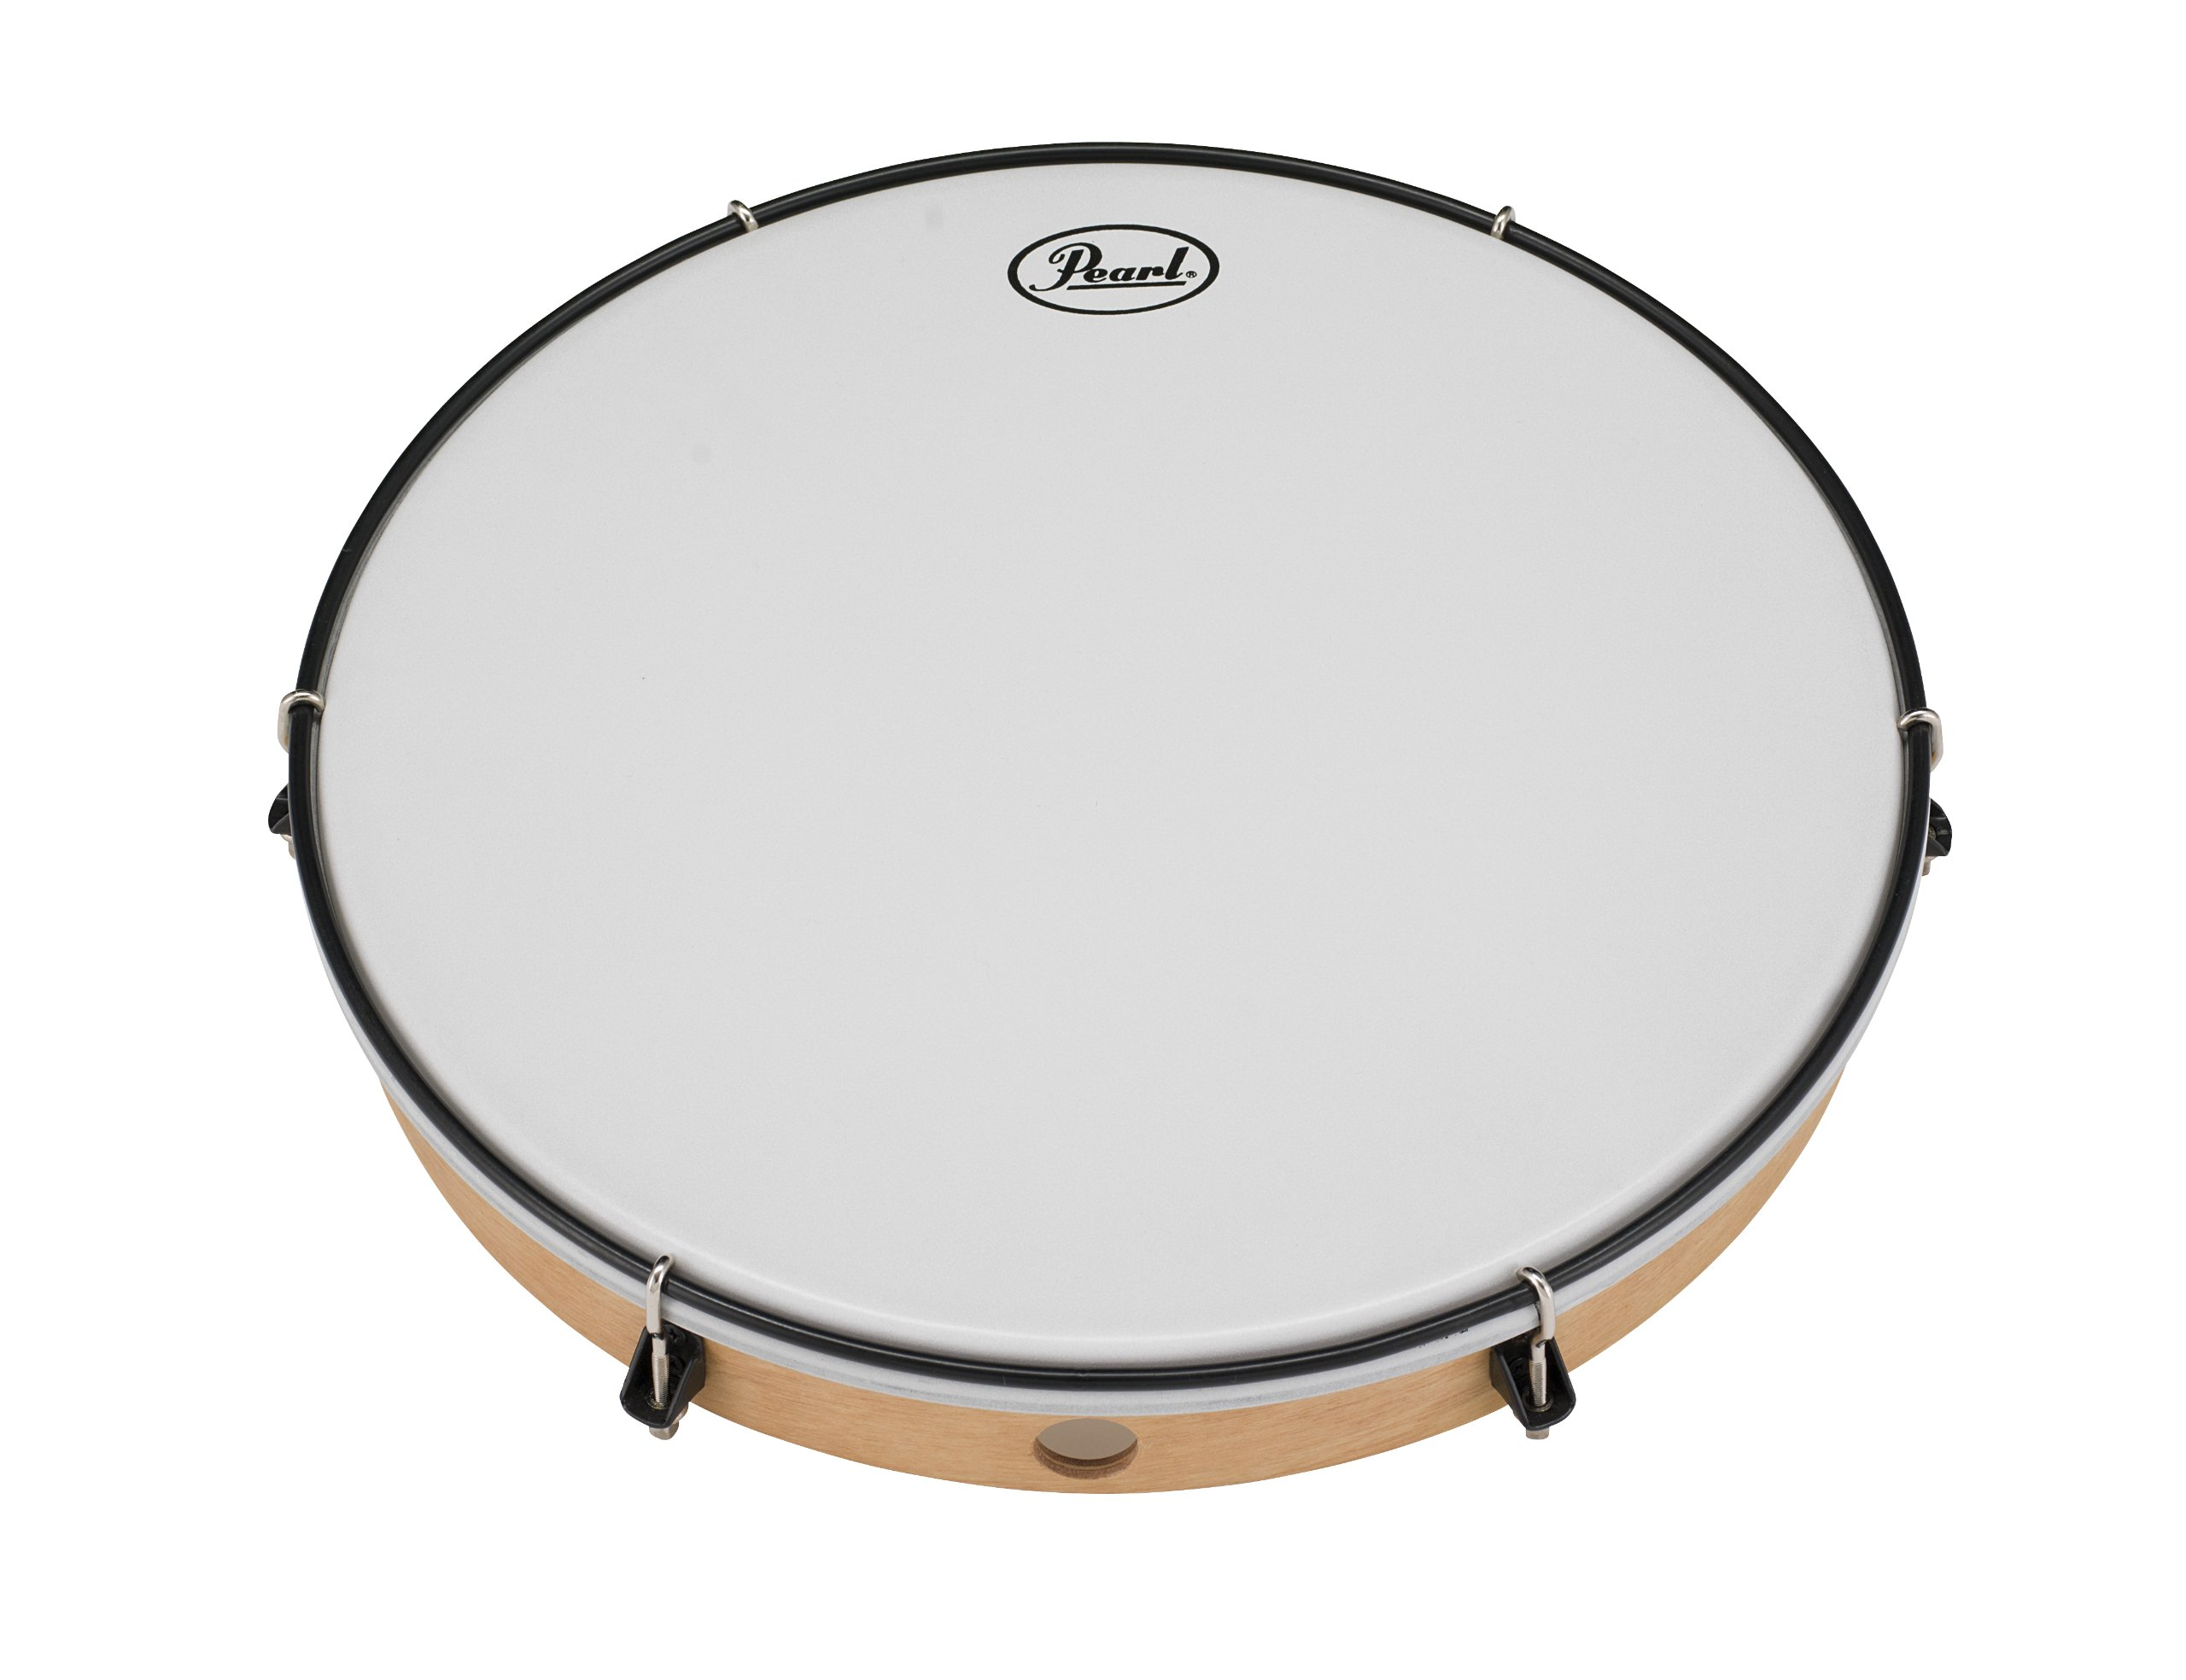 Pearl PFR14C 14-Inch Frame Drum with Lugs and Coated Heads